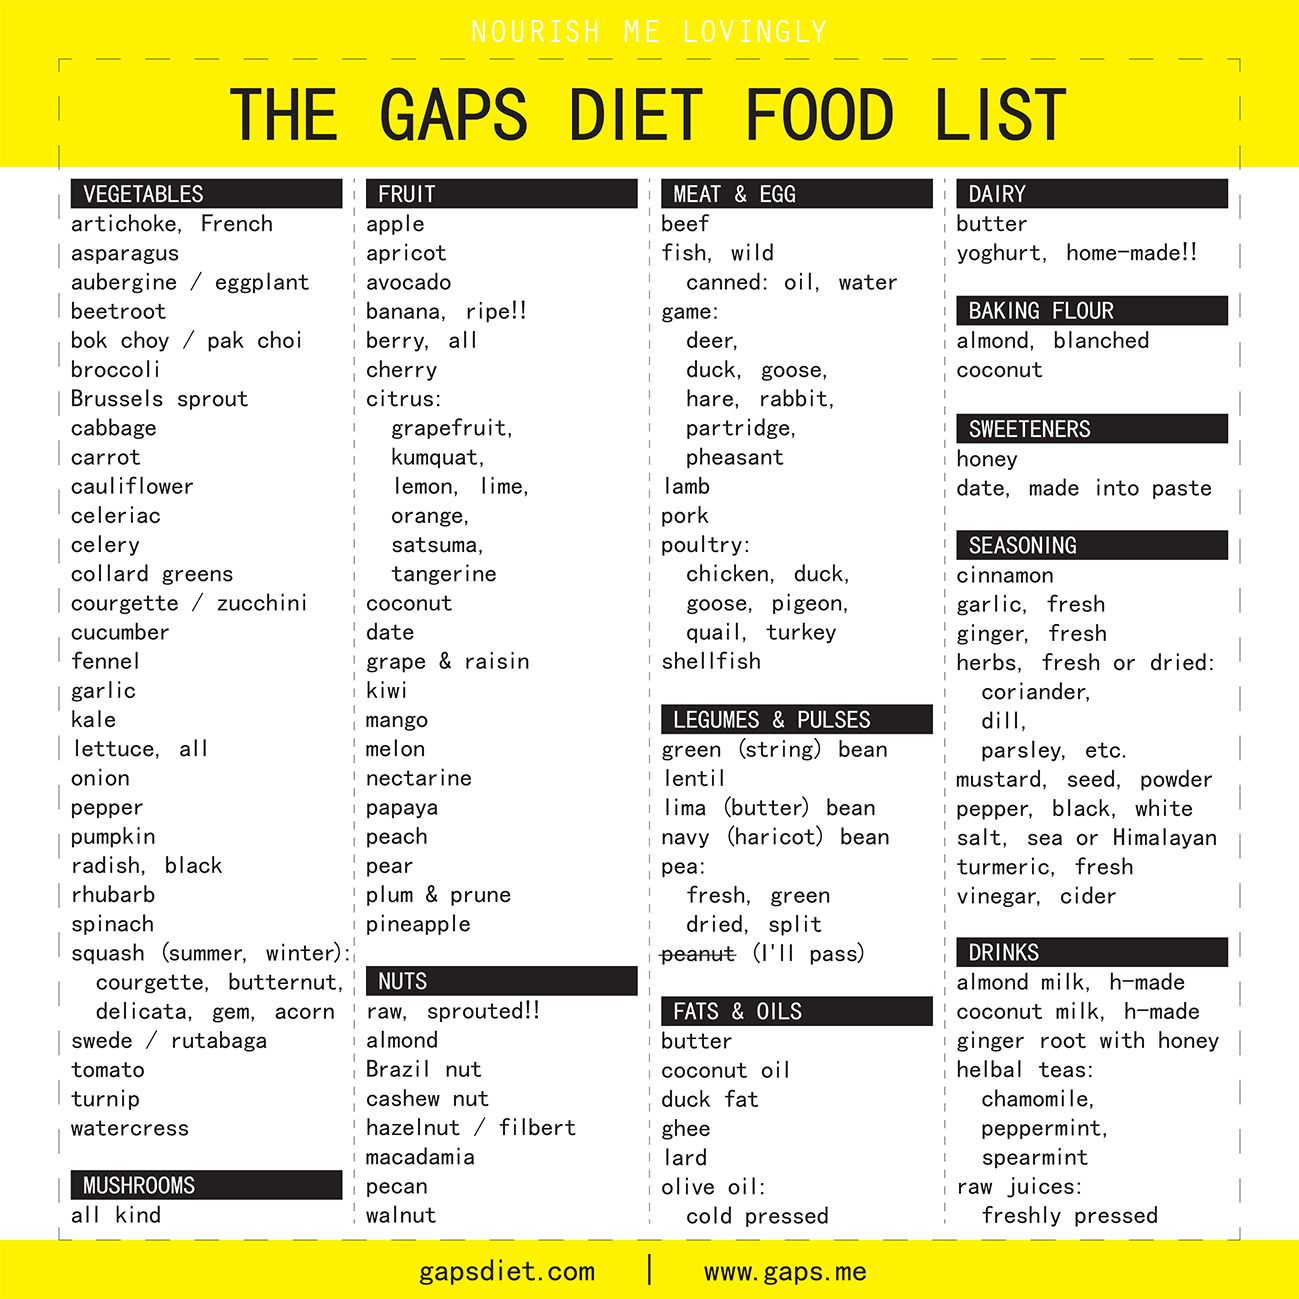 nourish me lovingly: the gaps diet food list | wellness in 2018